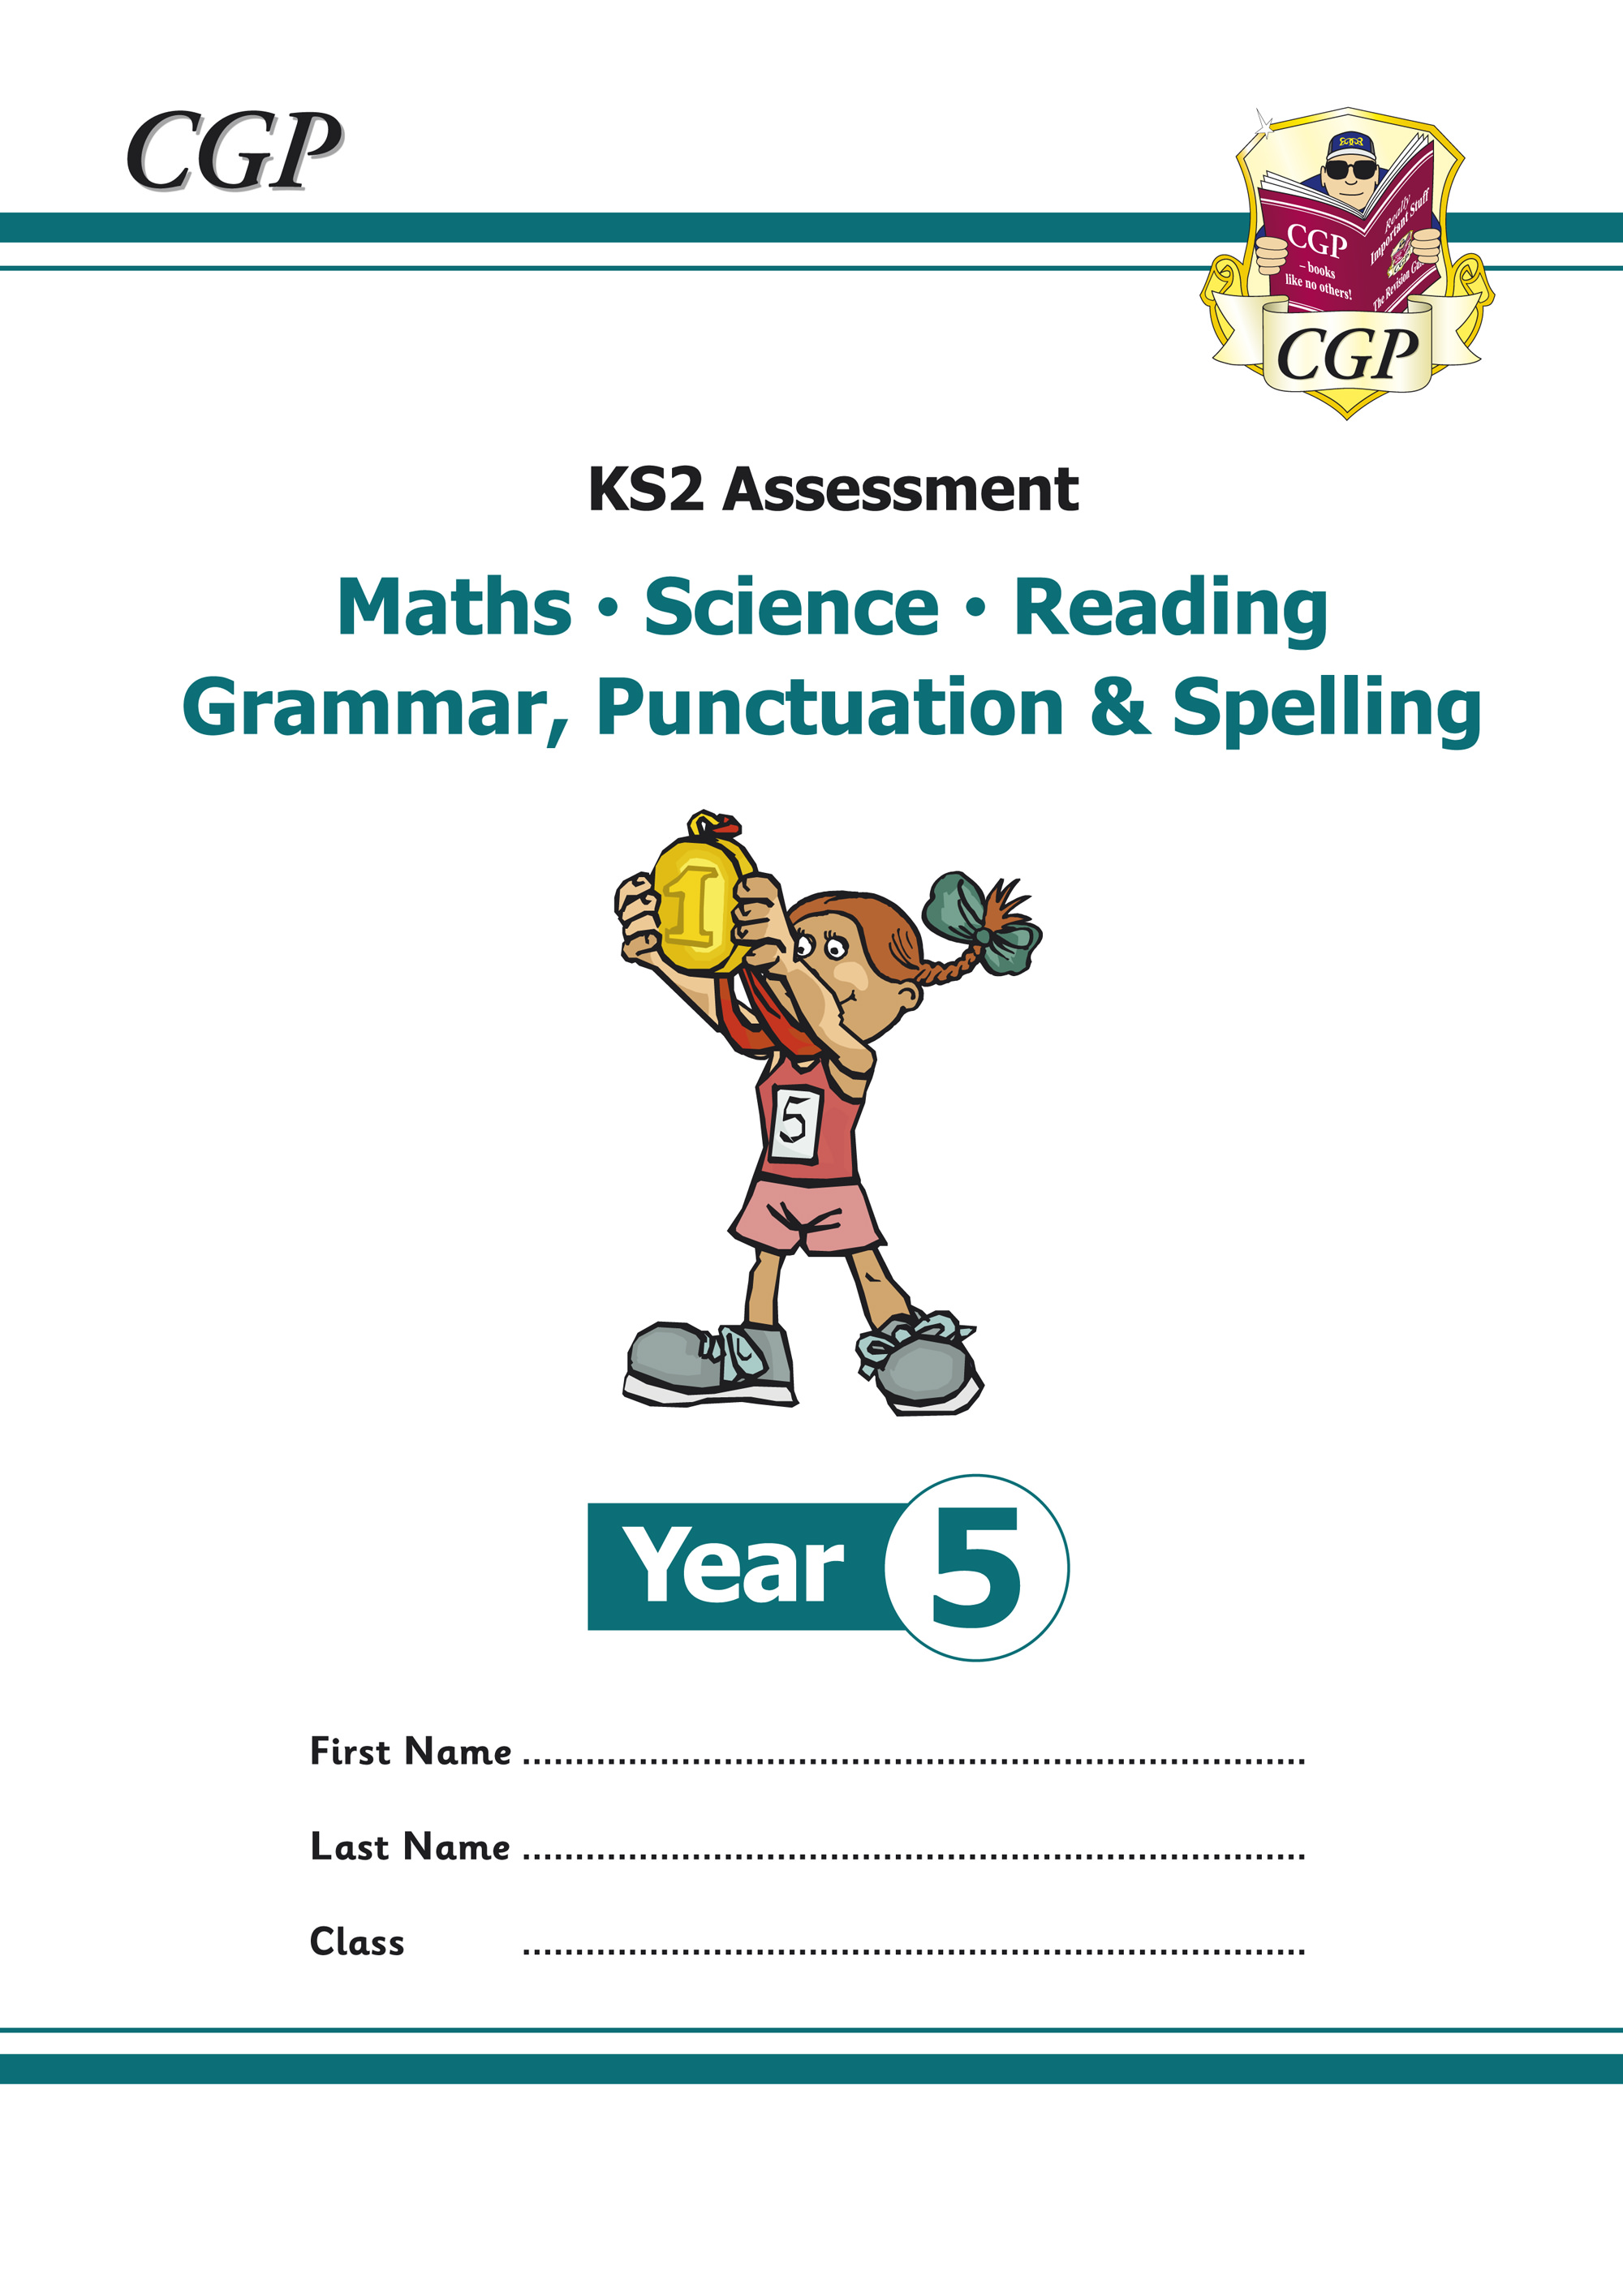 EMS5P21 - KS2 Assessment: Reading, SPaG, Maths and Science - Year 5 Tests